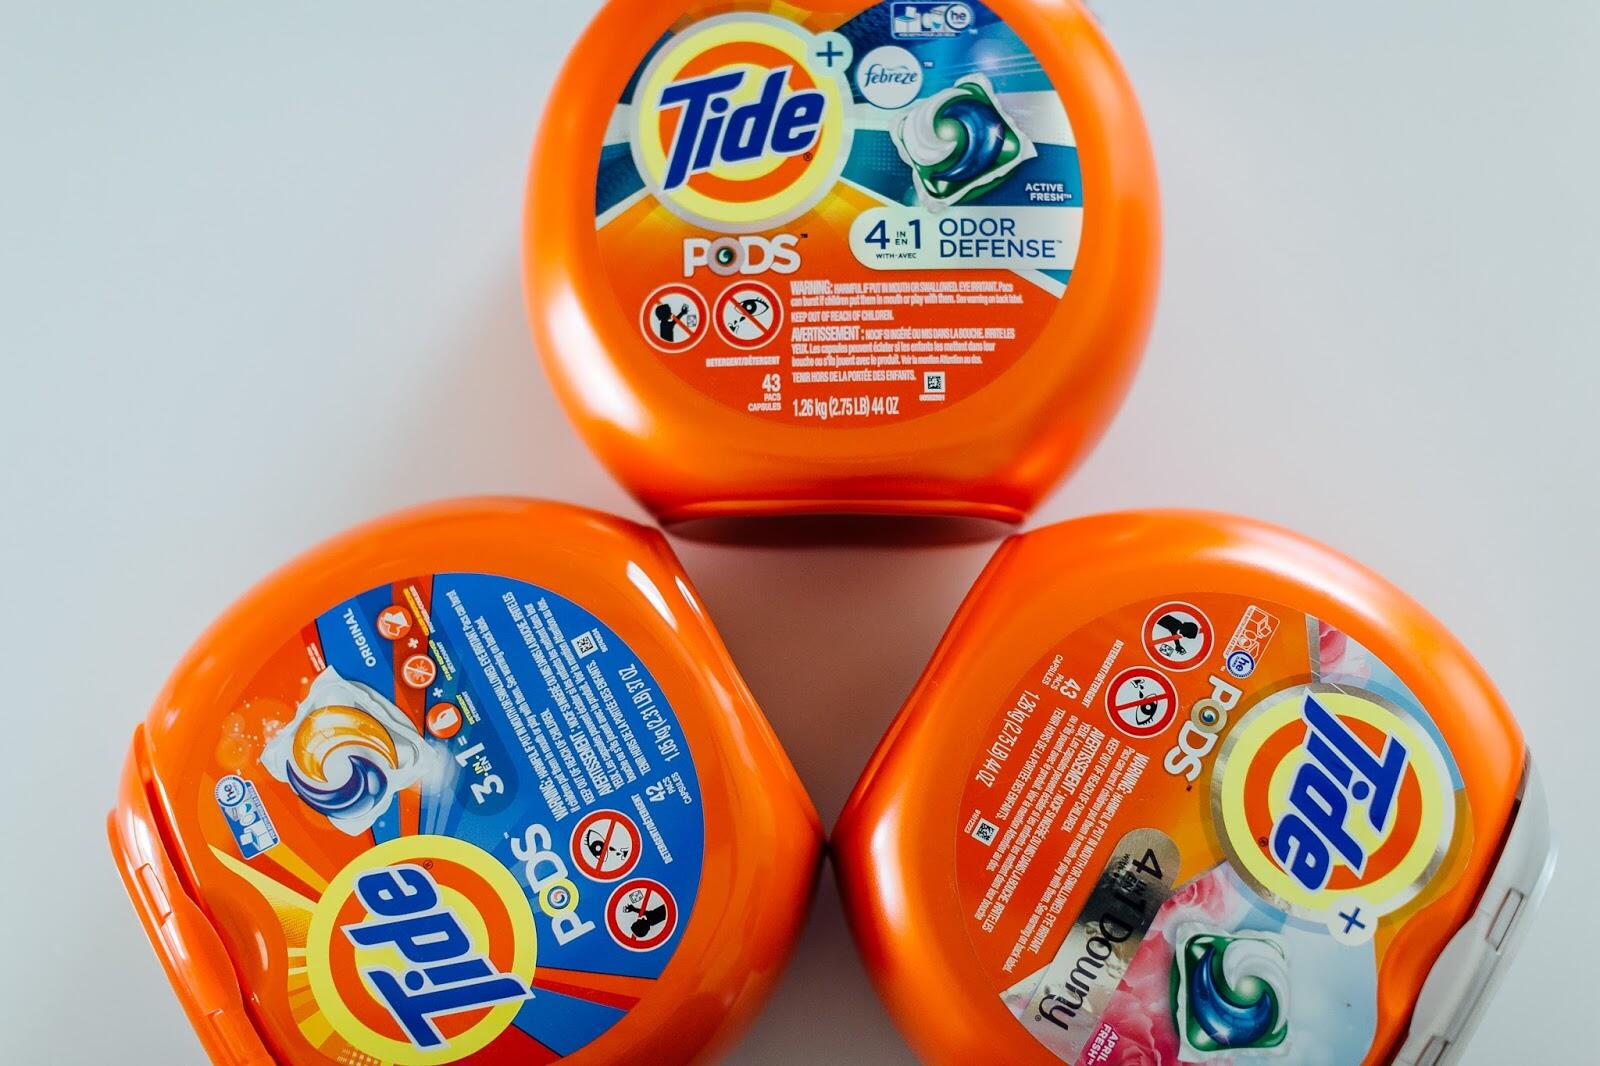 Music Festival Tips - 10 Ways to Prepare with Tide by lifestyle blogger Laura of Walking in Memphis in High Heels